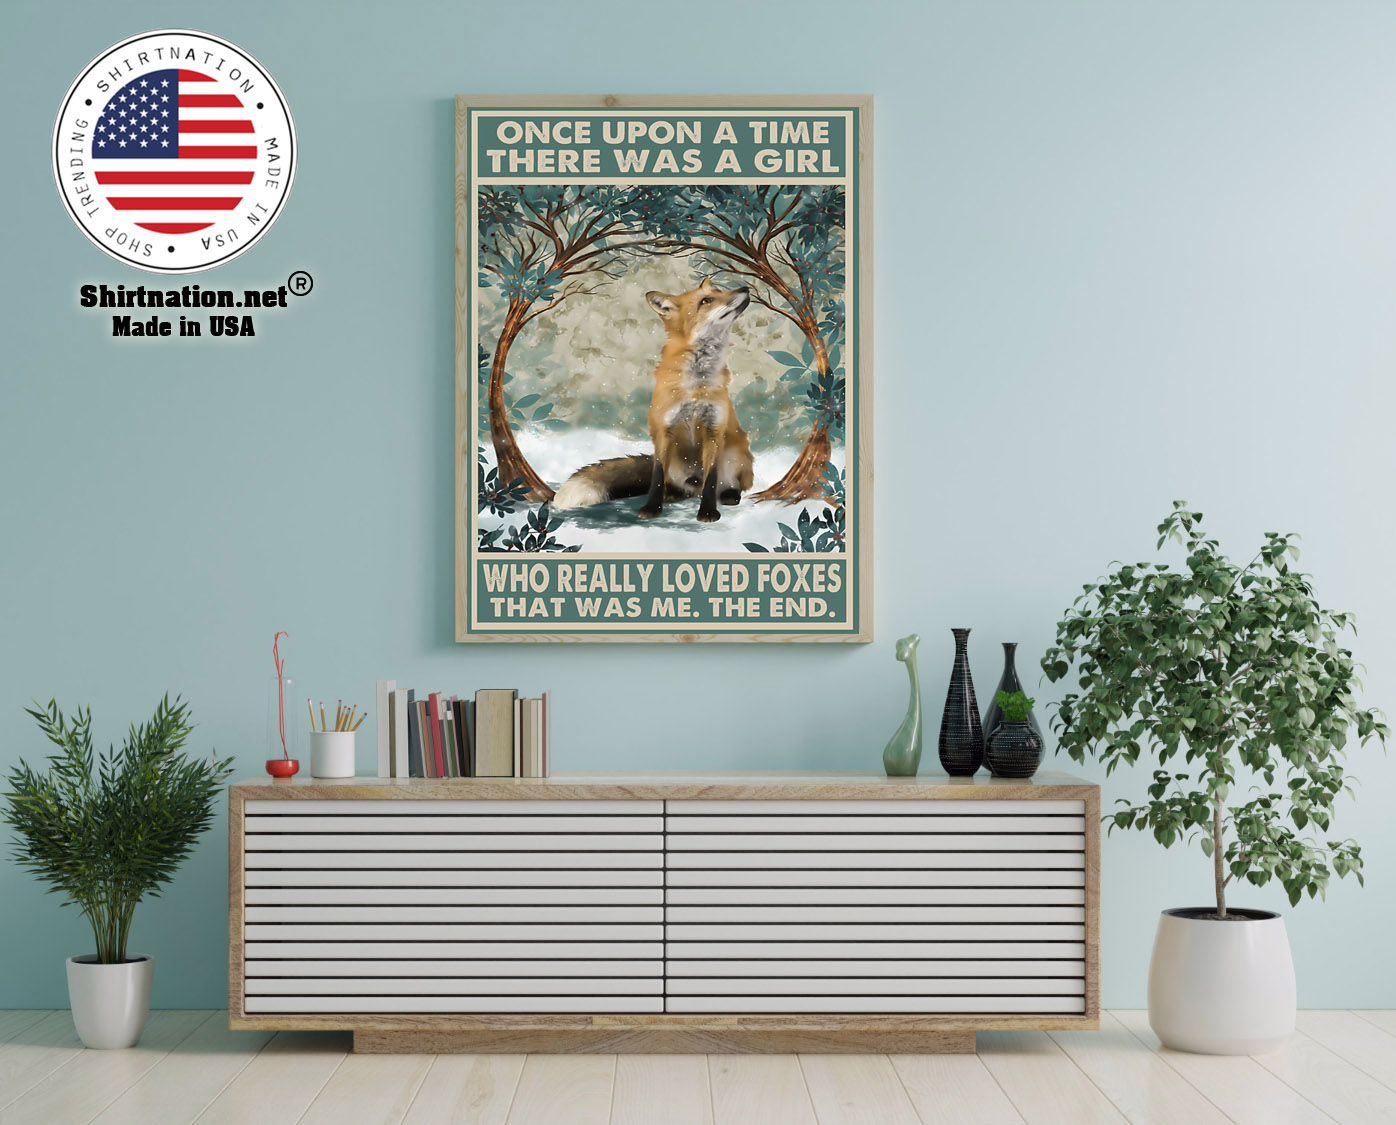 Fox once upon a time there was a girl who really loved foxes poster 12